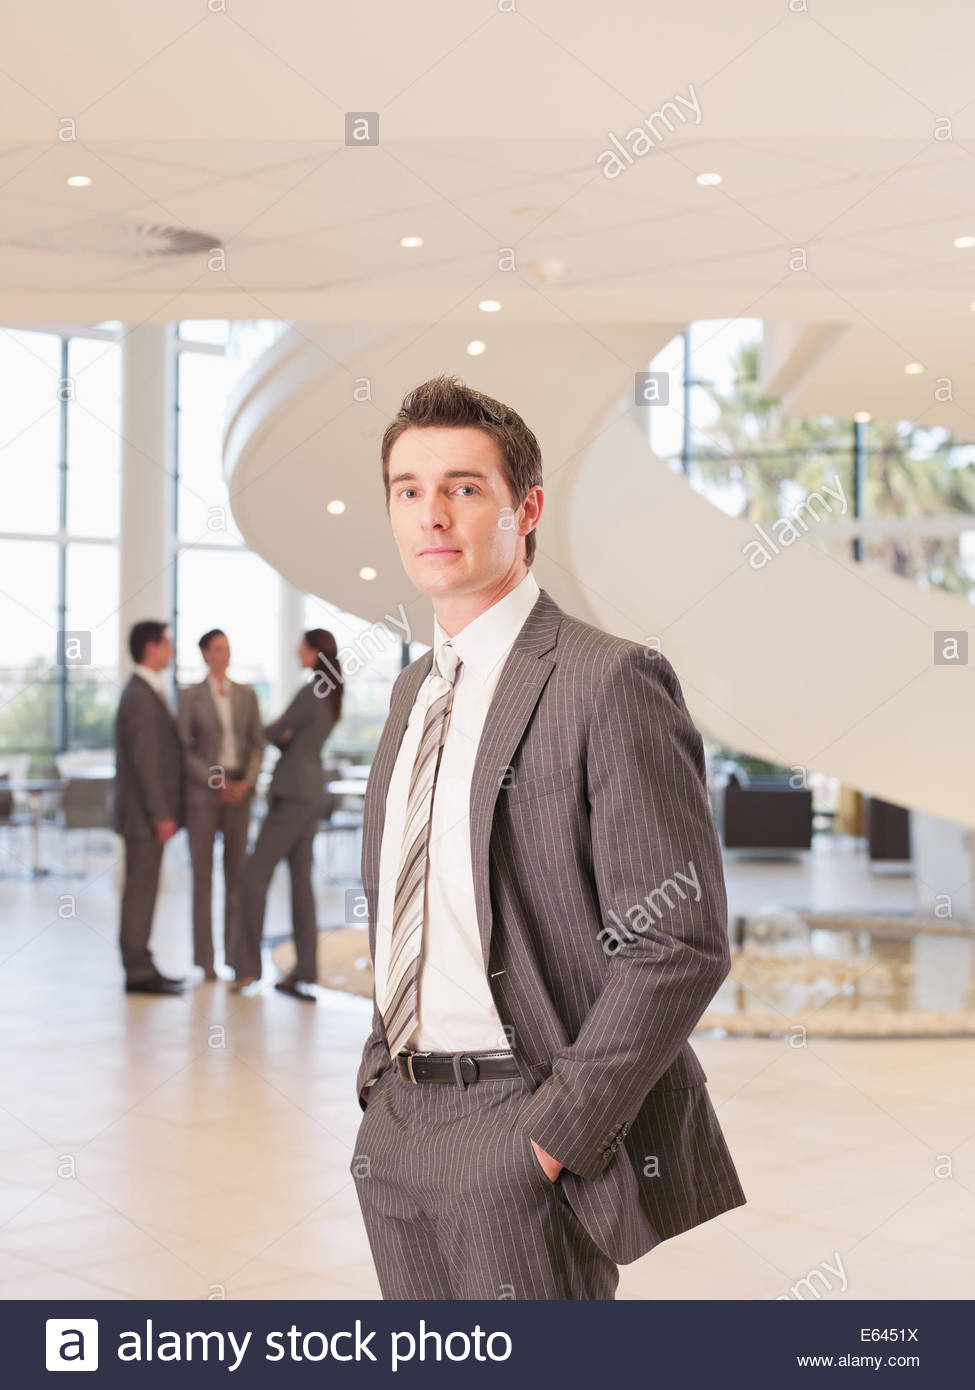 Businessman standing in office lobby Photo Stock